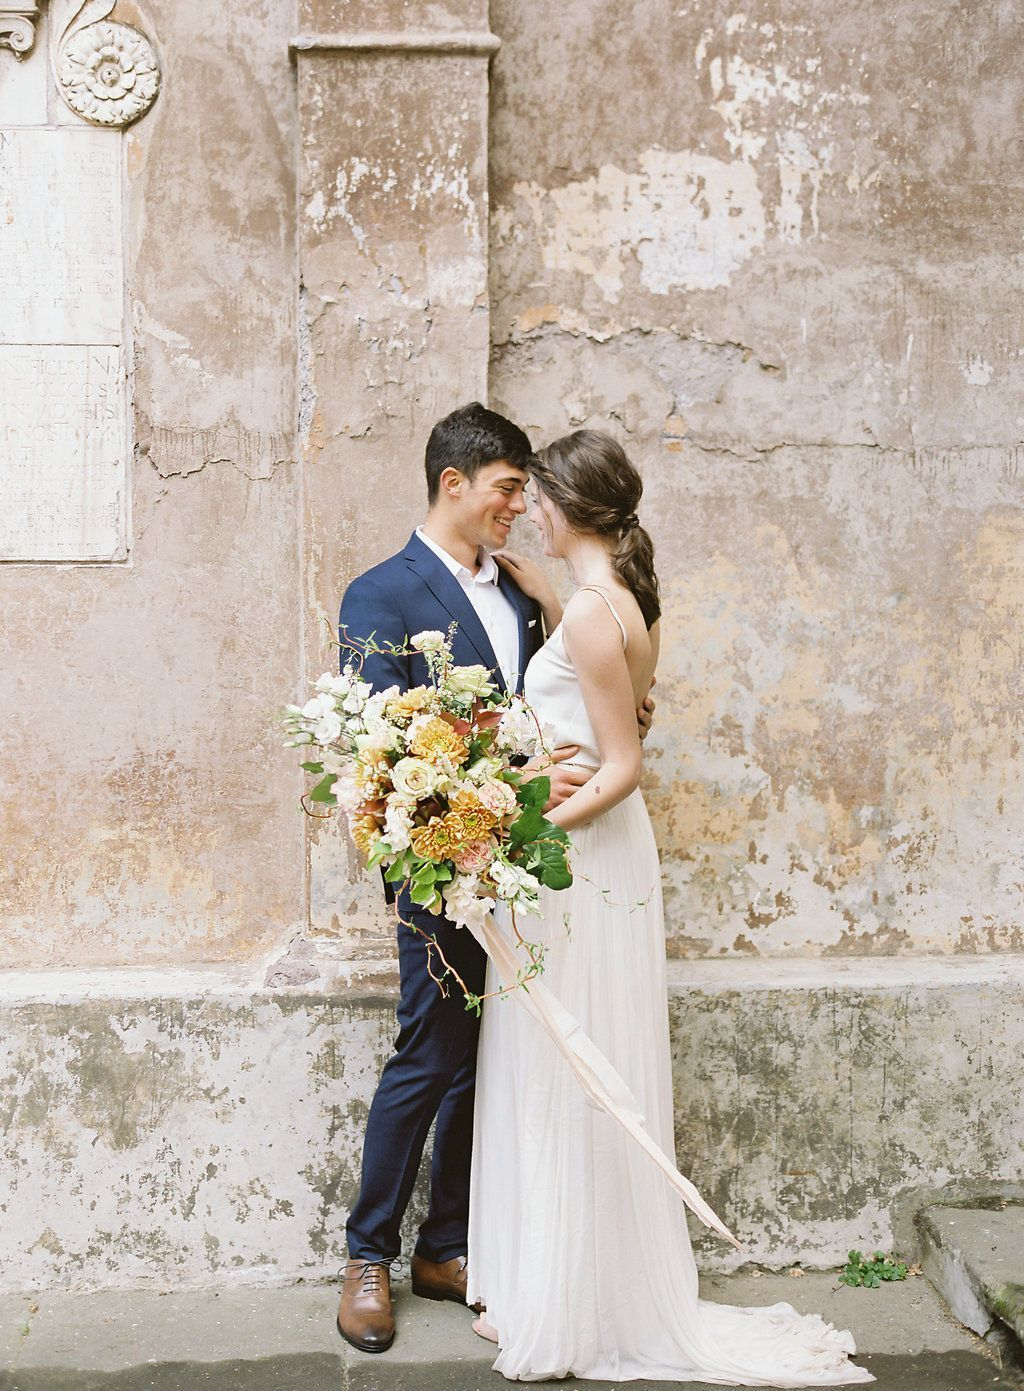 Vicki_Grafton_Photography_Rome_Italy_Wedding_Photographer_2017-59